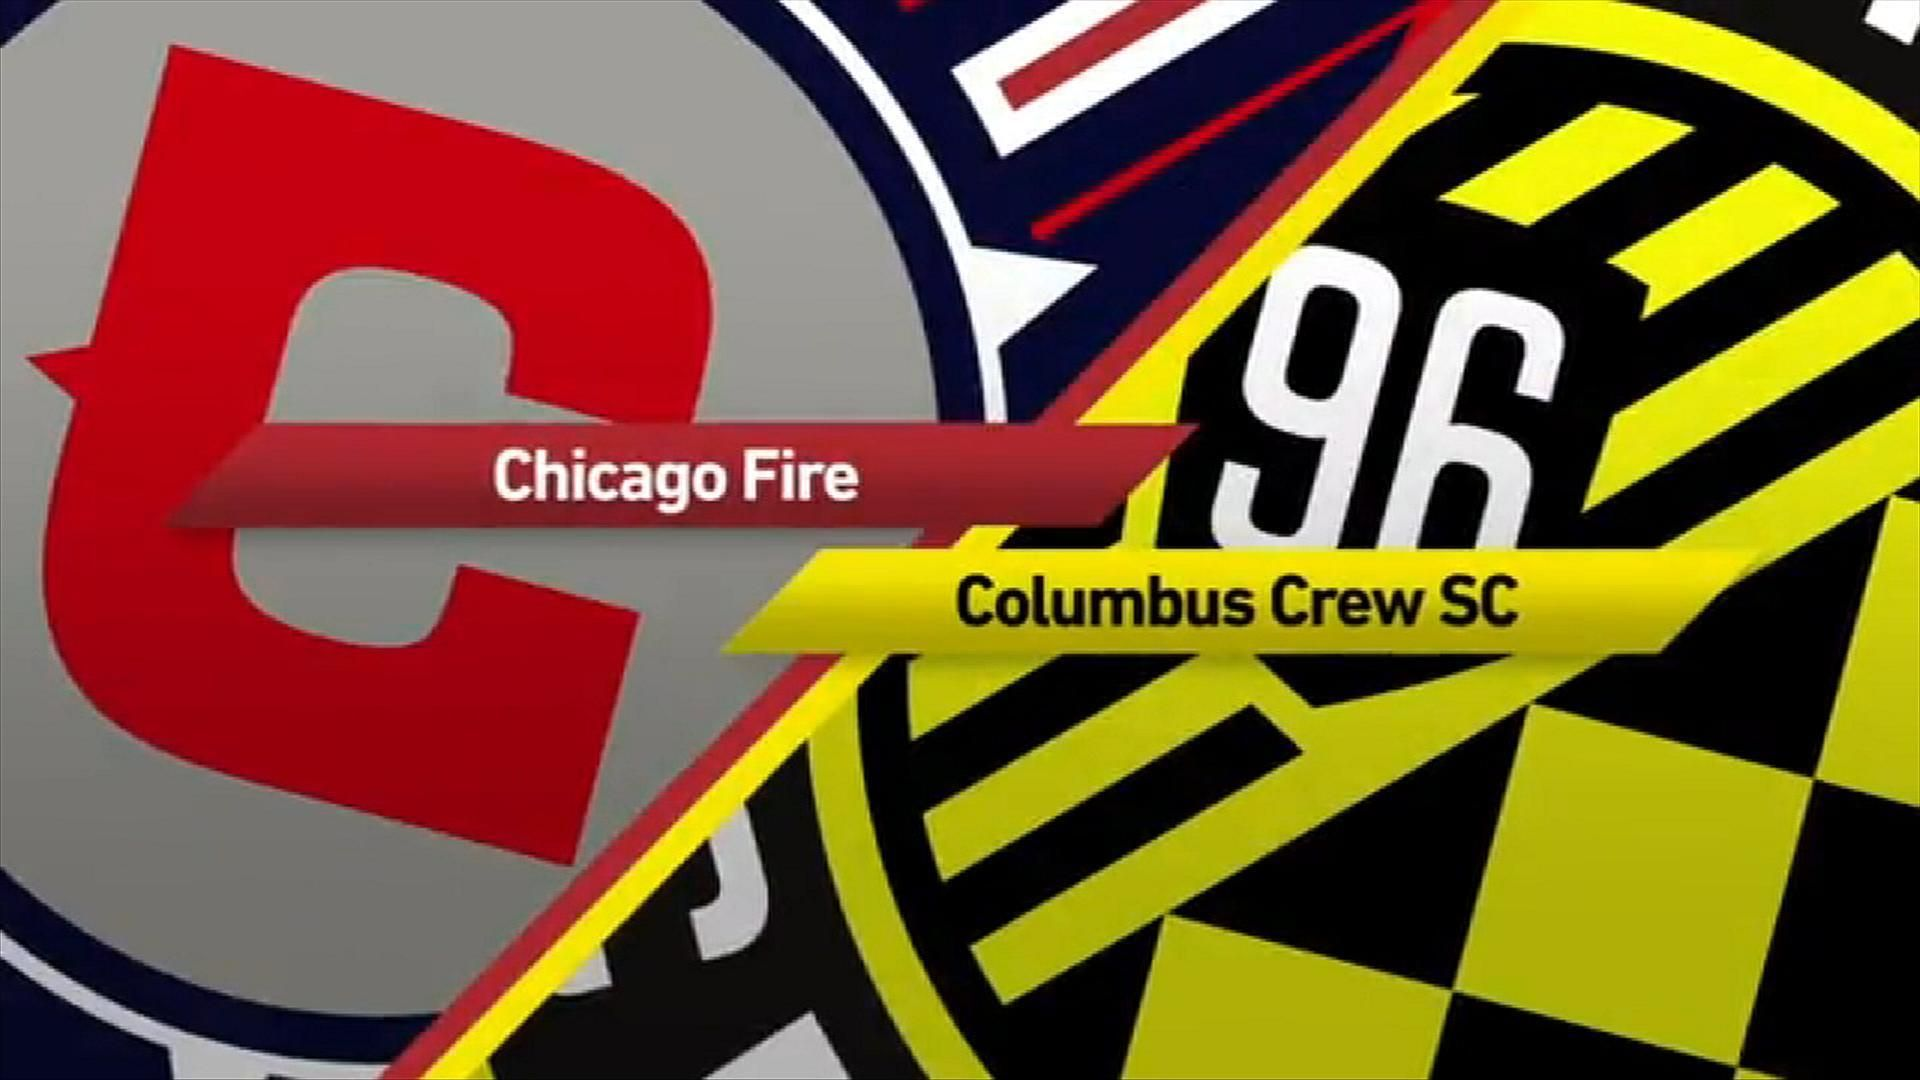 Chicago 1-0 Columbus: Nikolic, McCarty lead Fire - Via MLS